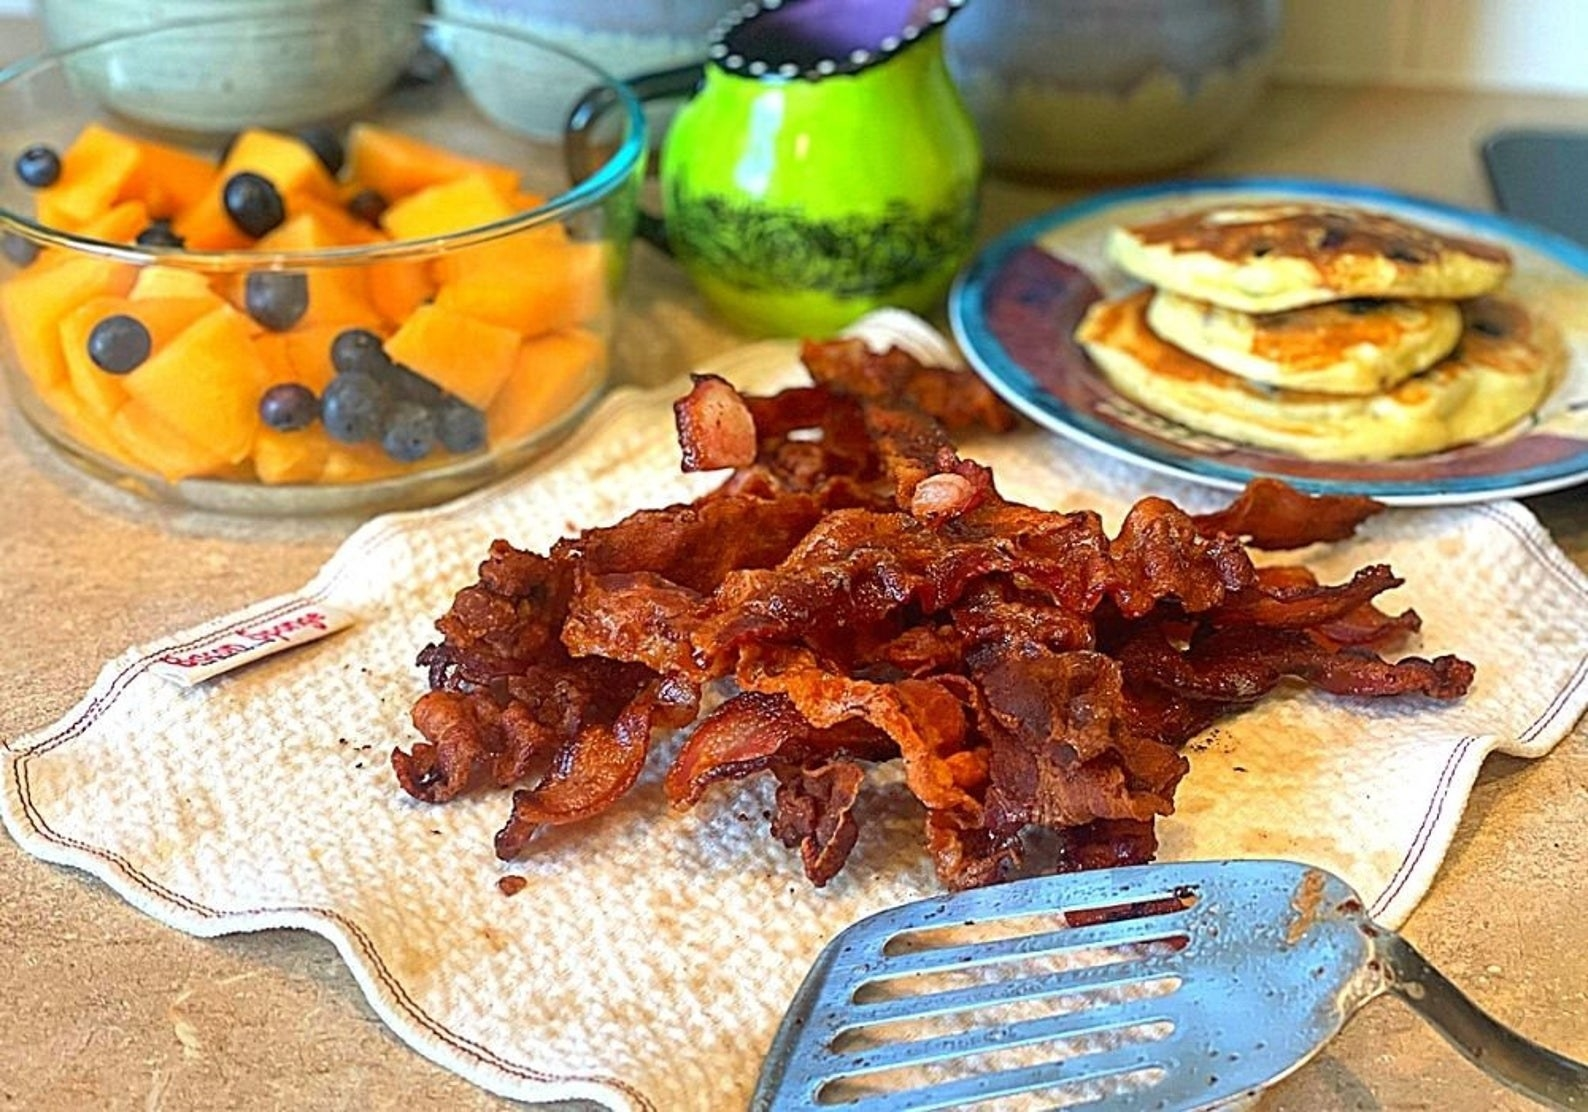 Pile of bacon sitting on the quilted cloth